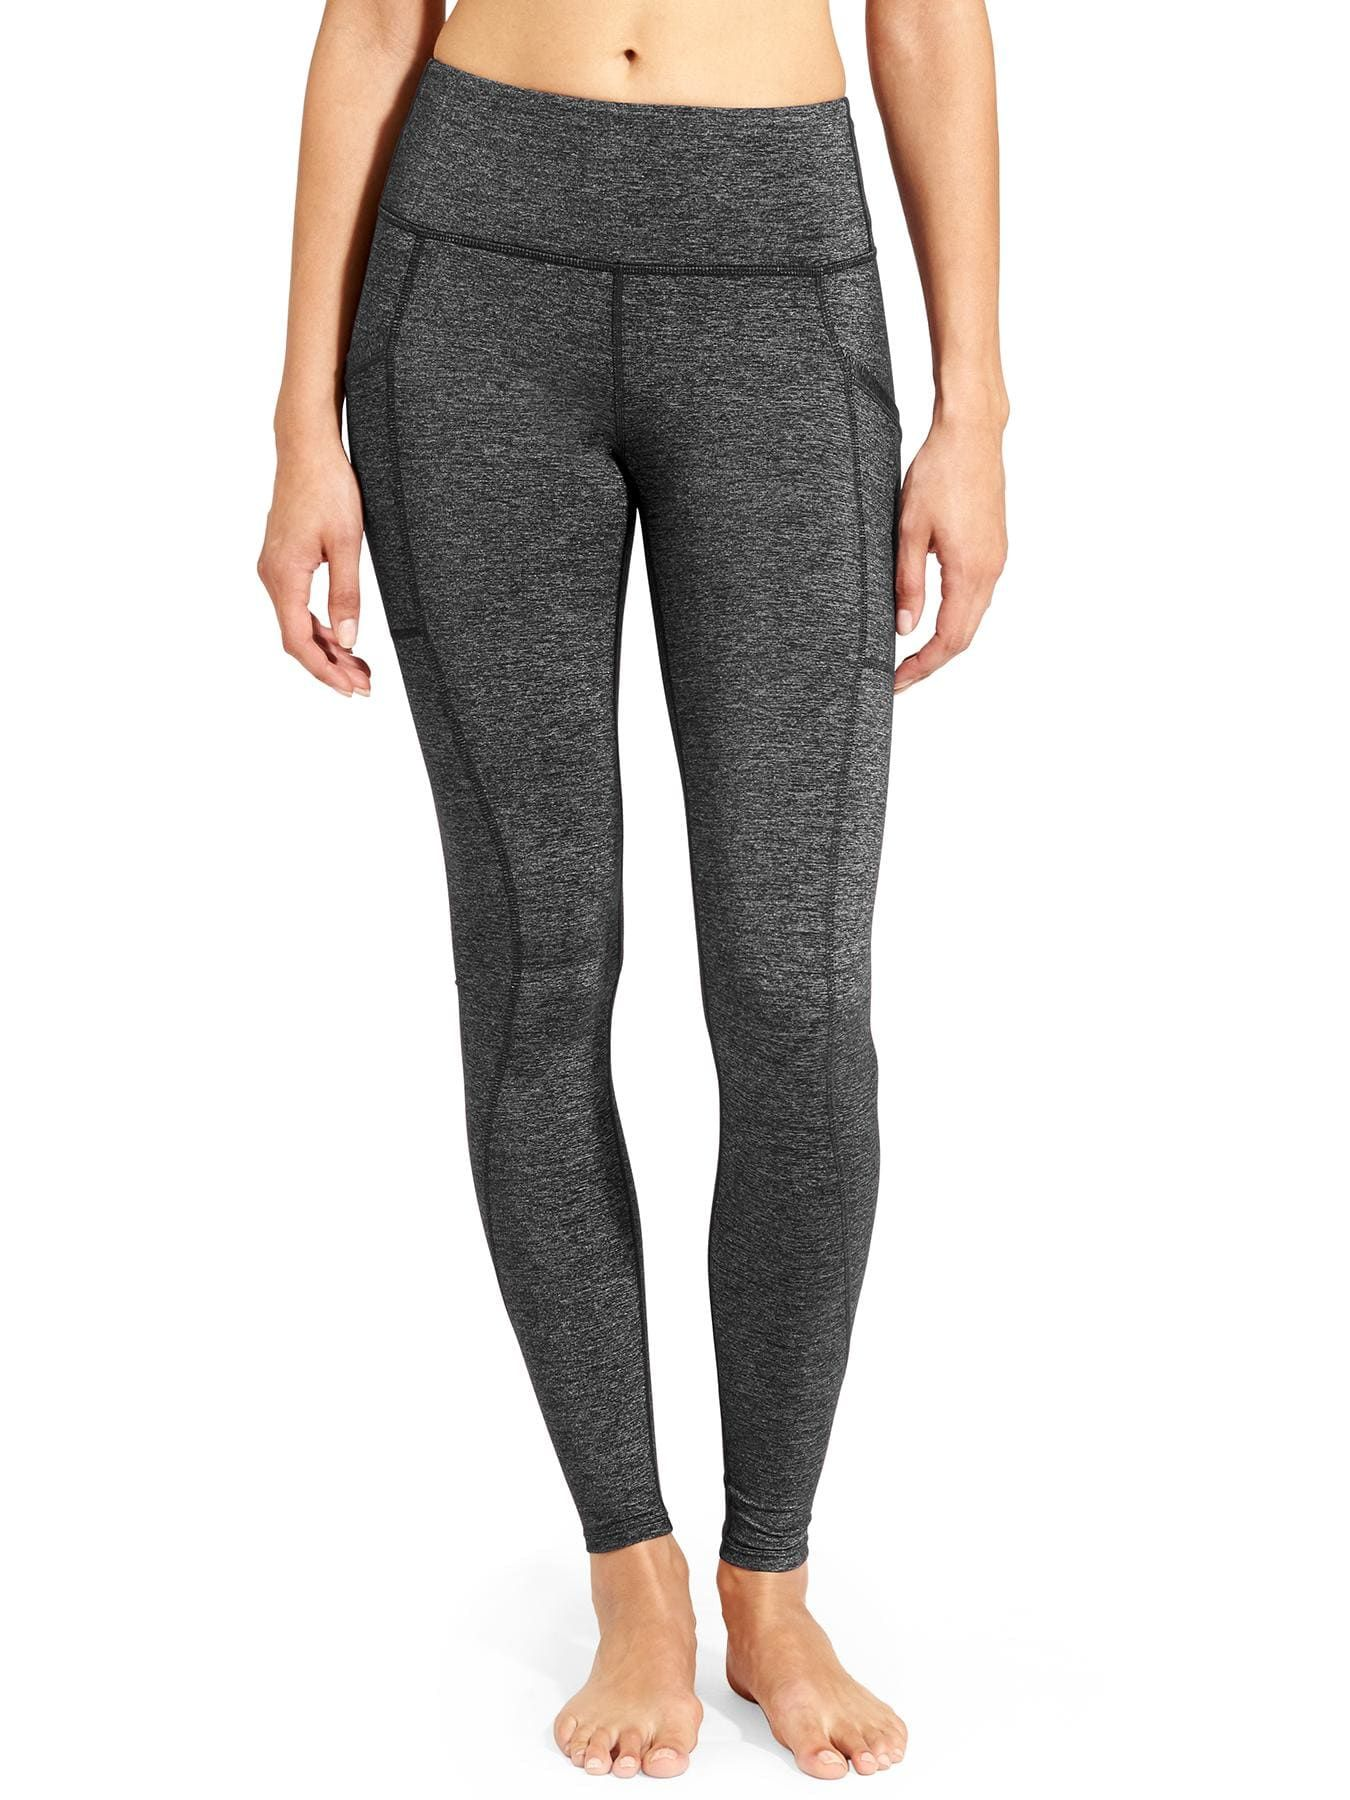 28eeb72f26dc3 High Rise Quest Chaturanga to Town Tight   Athleta   Awesome ...